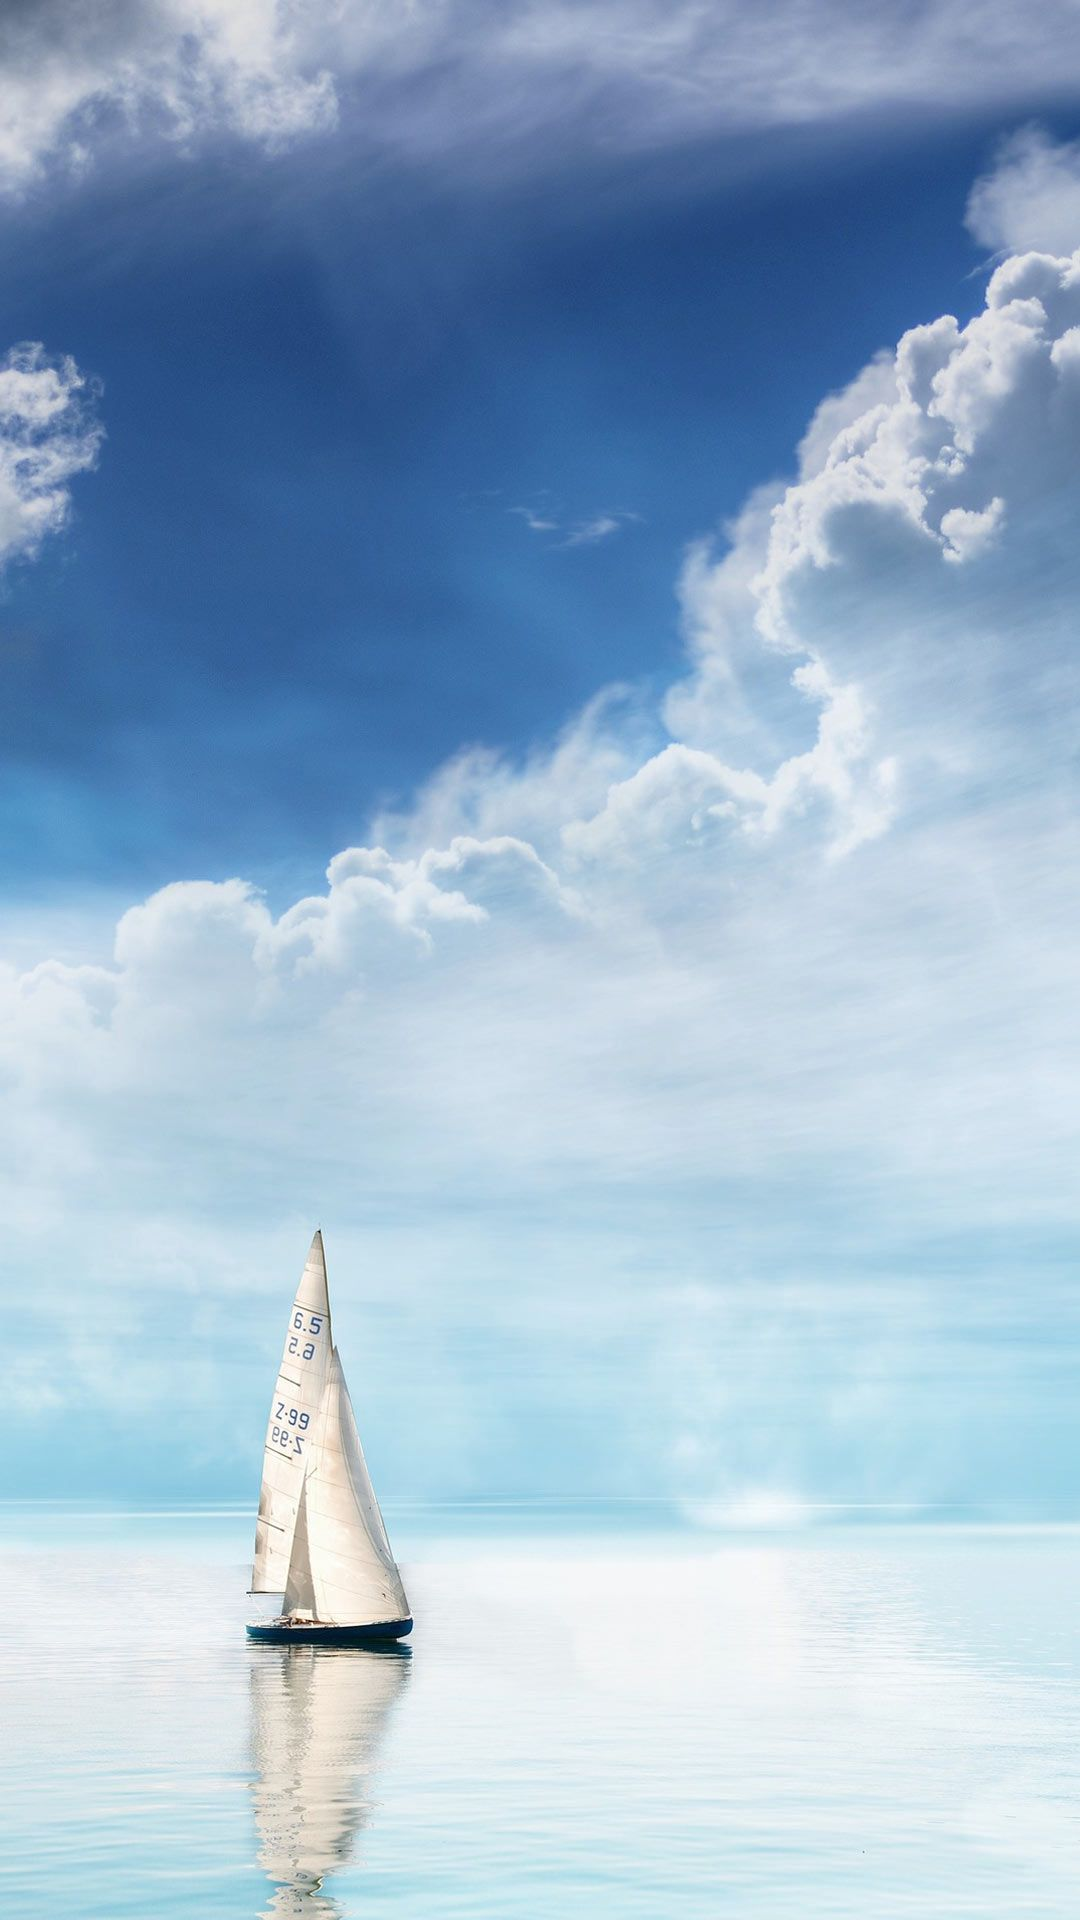 Sailboat Wallpaper For Android Iphone Background Wallpaper Best Iphone Wallpapers Iphone Wallpaper